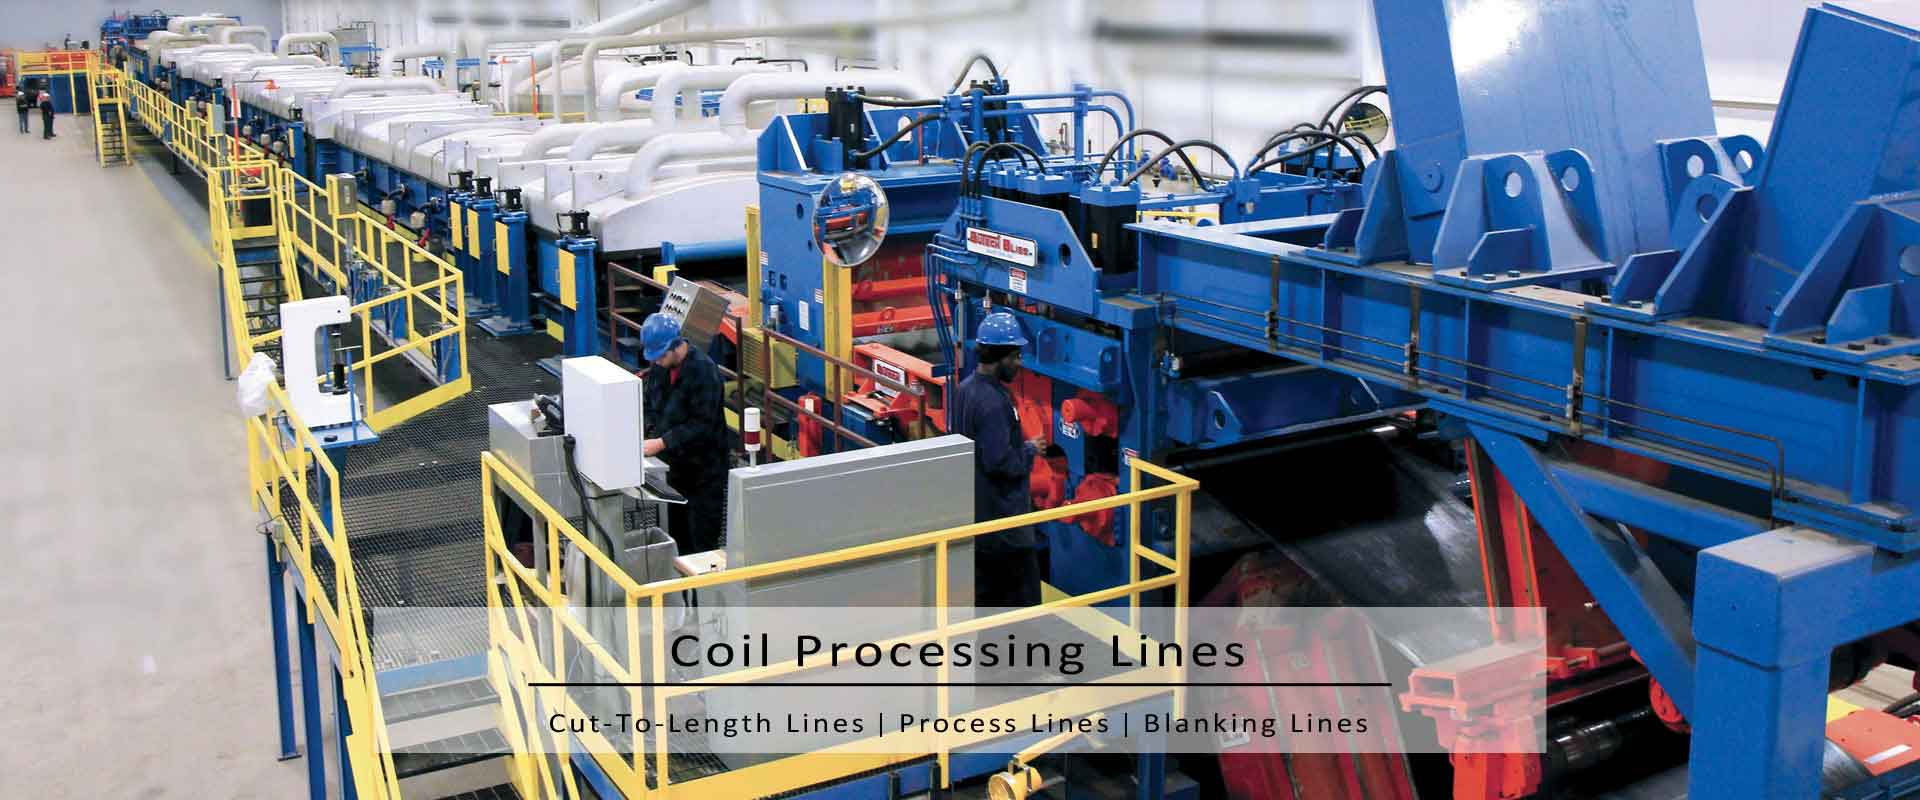 cut-to-length coil lines.